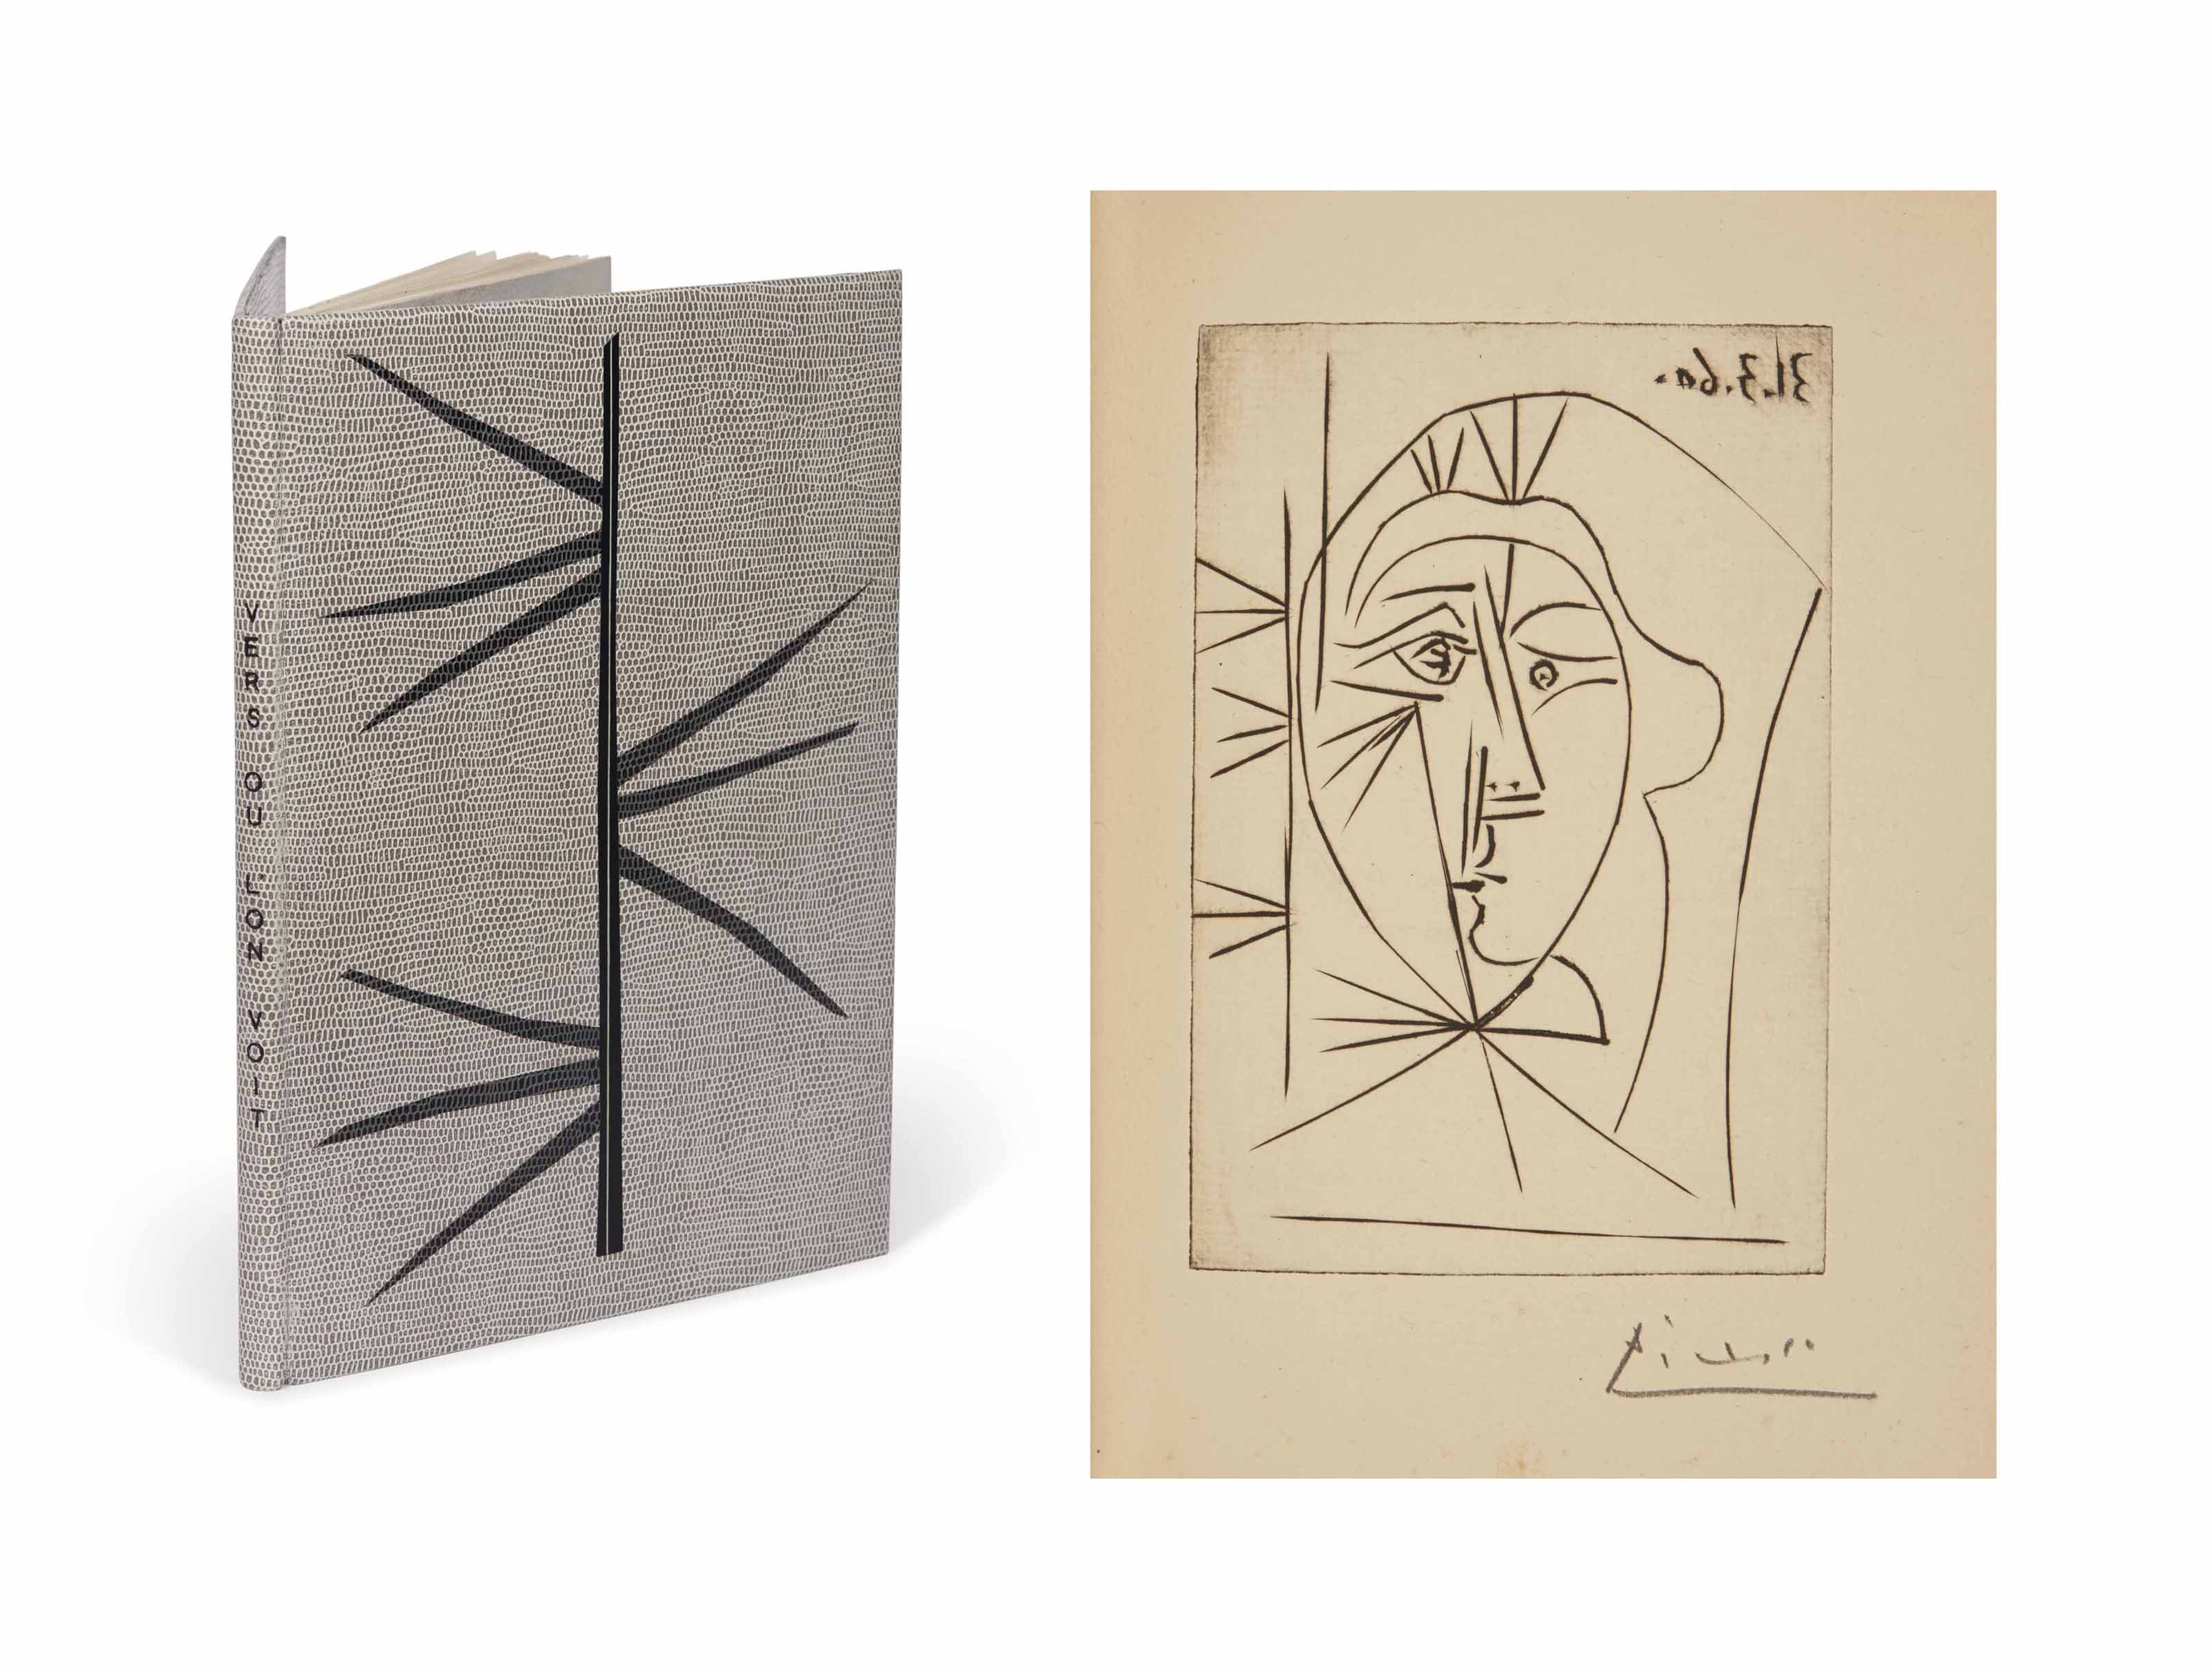 [PICASSO] -- Pierre-André BENO